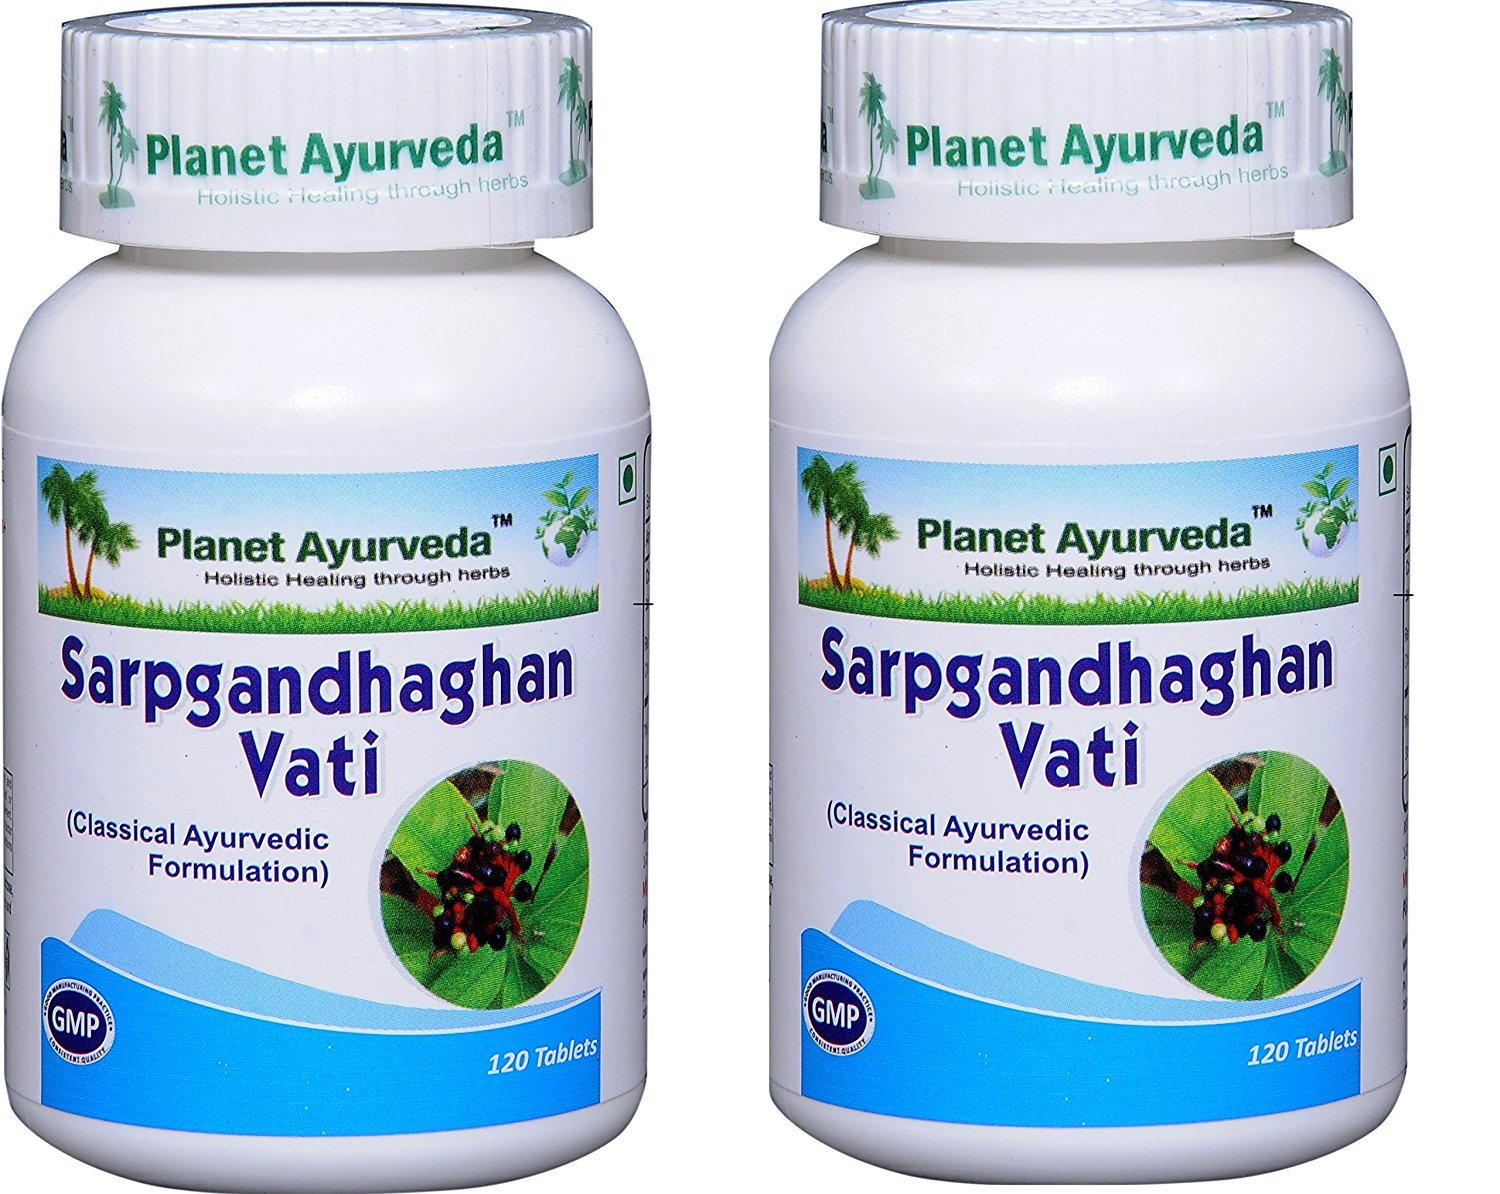 Sarpgandhaghan Vati (Rauwolfia serpentina) for Hypertension - 2 bottles (each 120 tablets, 500mg) - Planet Ayurveda (in USA) by Planet Ayurveda